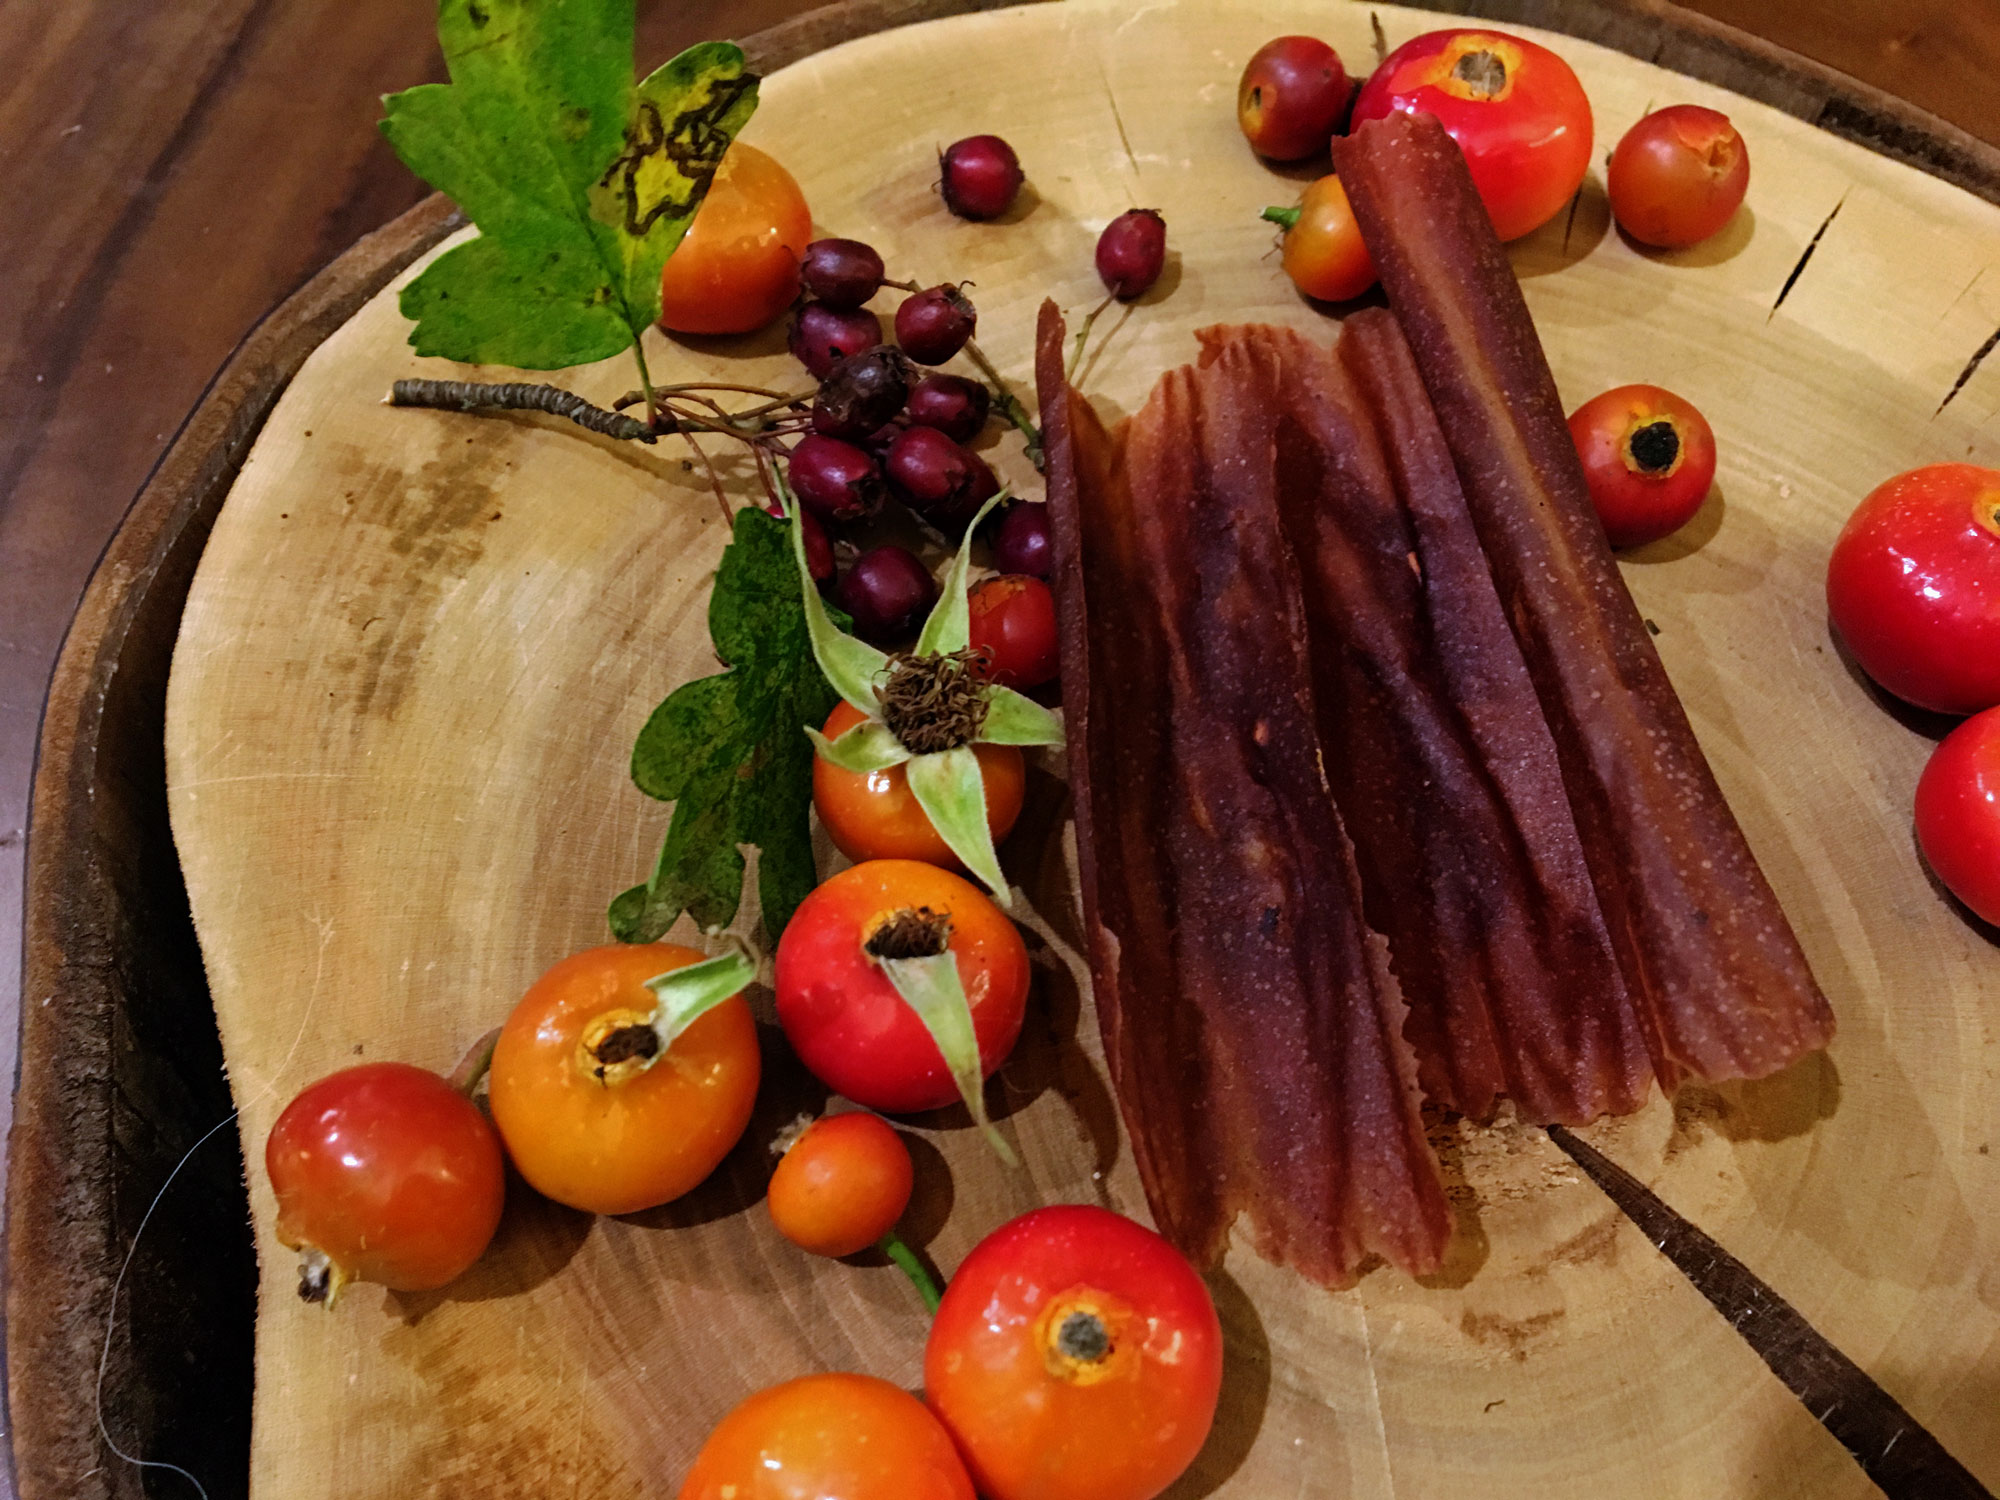 Delicious and Nutritious fruit leather